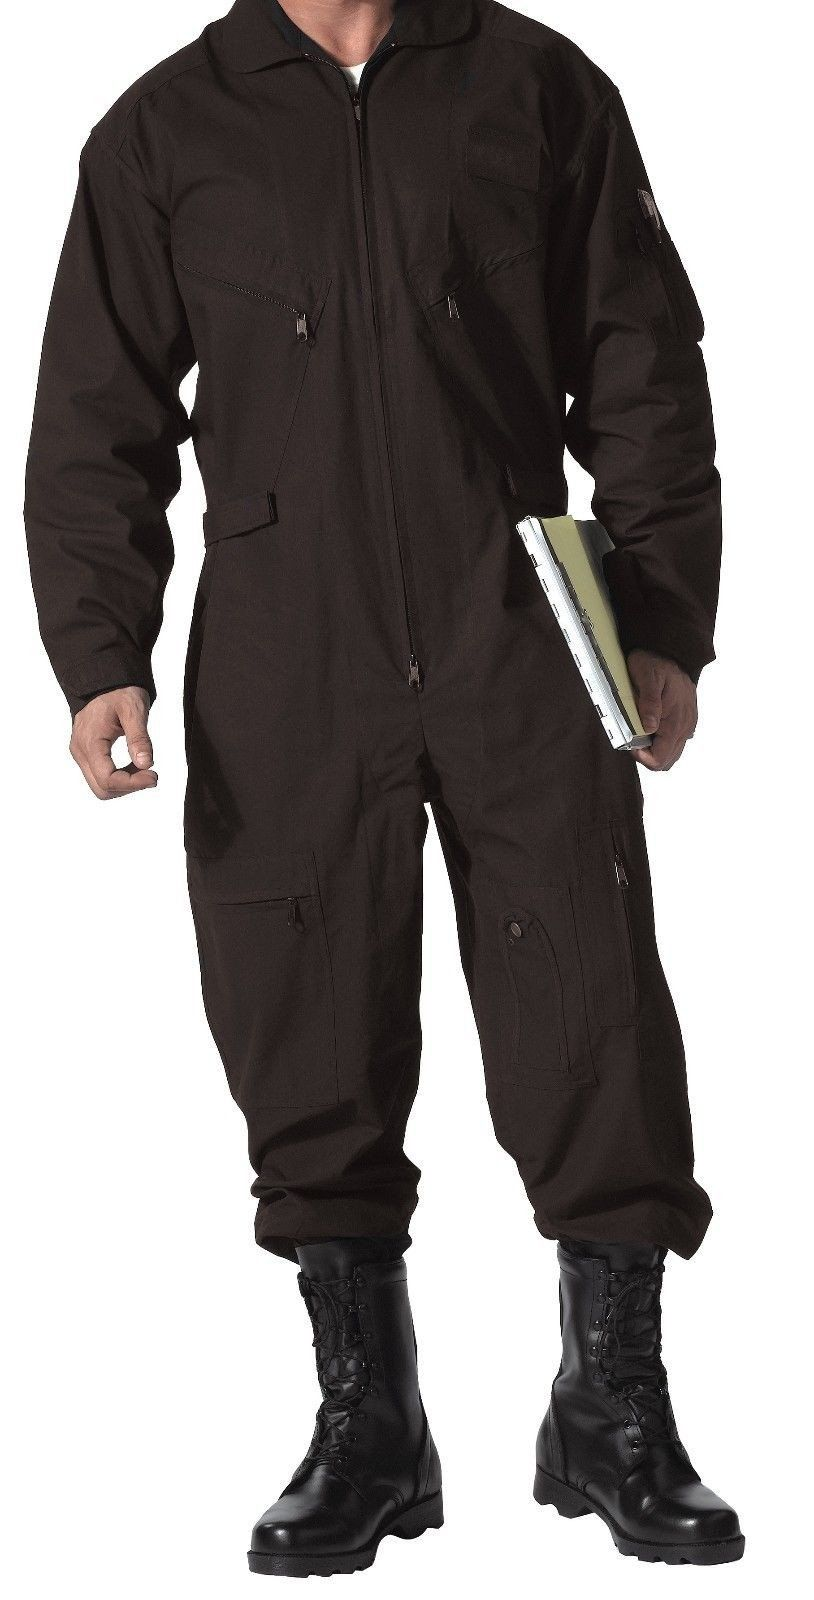 Air Force Style Flight Suit Cotton Coveralls FlightSuit